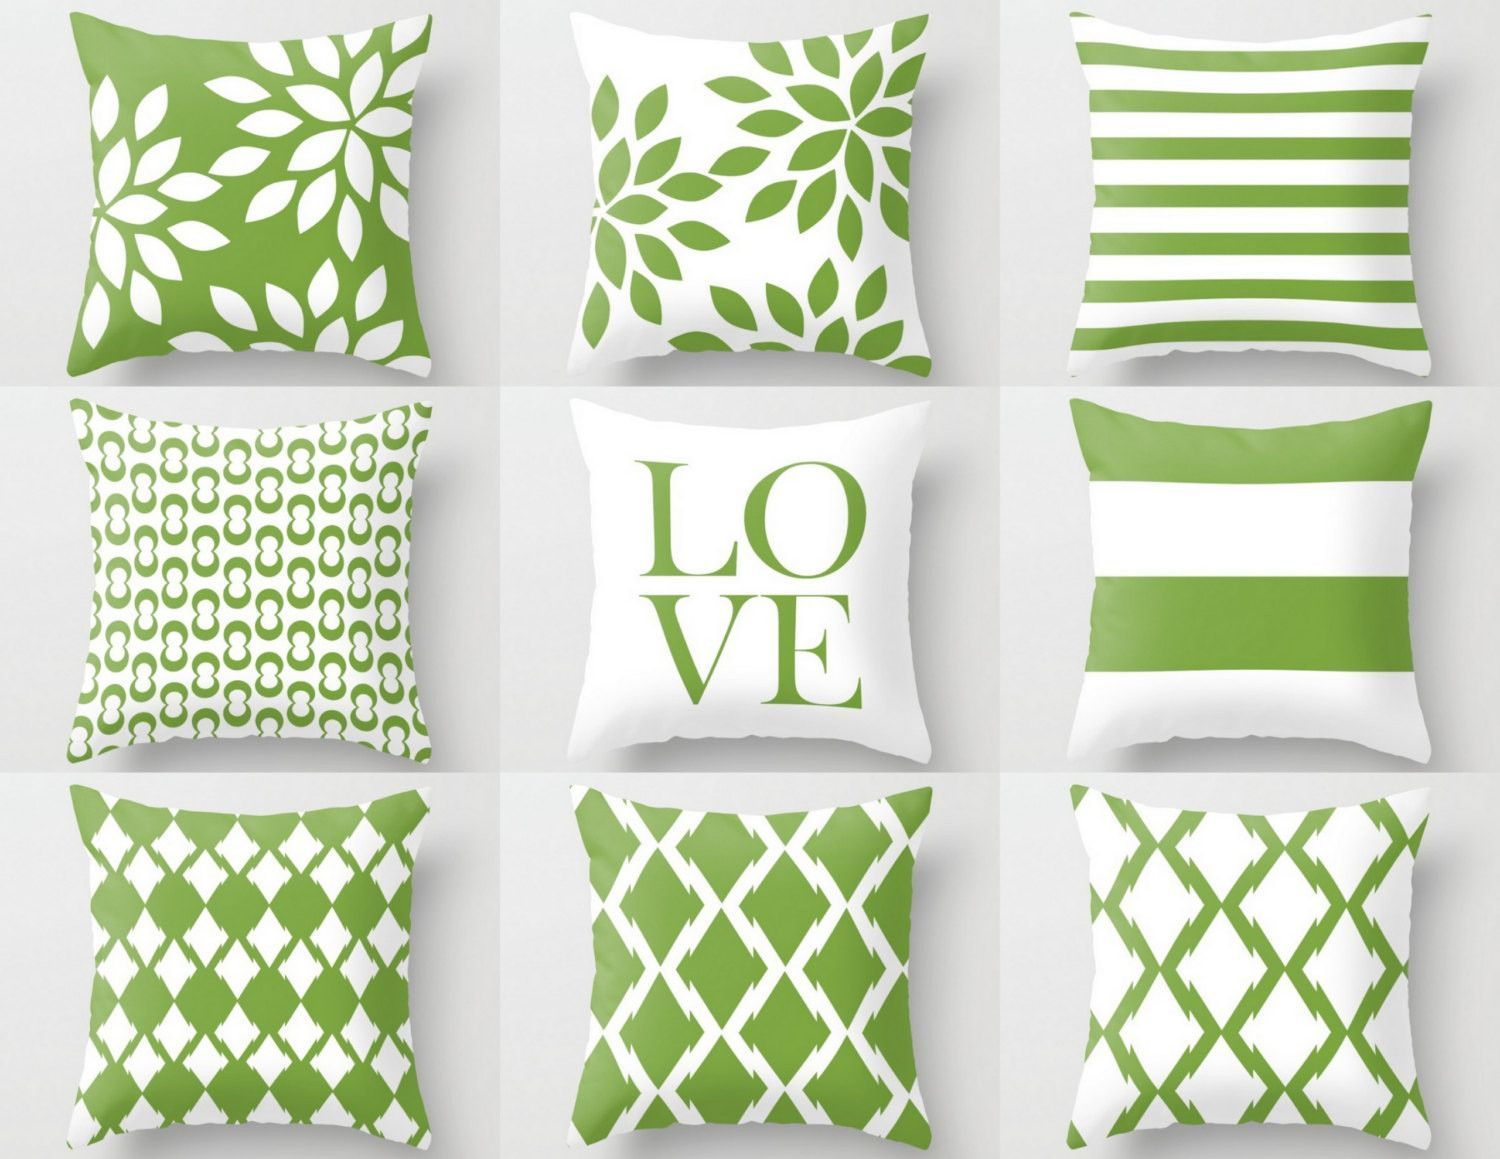 Green White Pillow Cover, Rosemary Green, Accent Pillows, Cushion